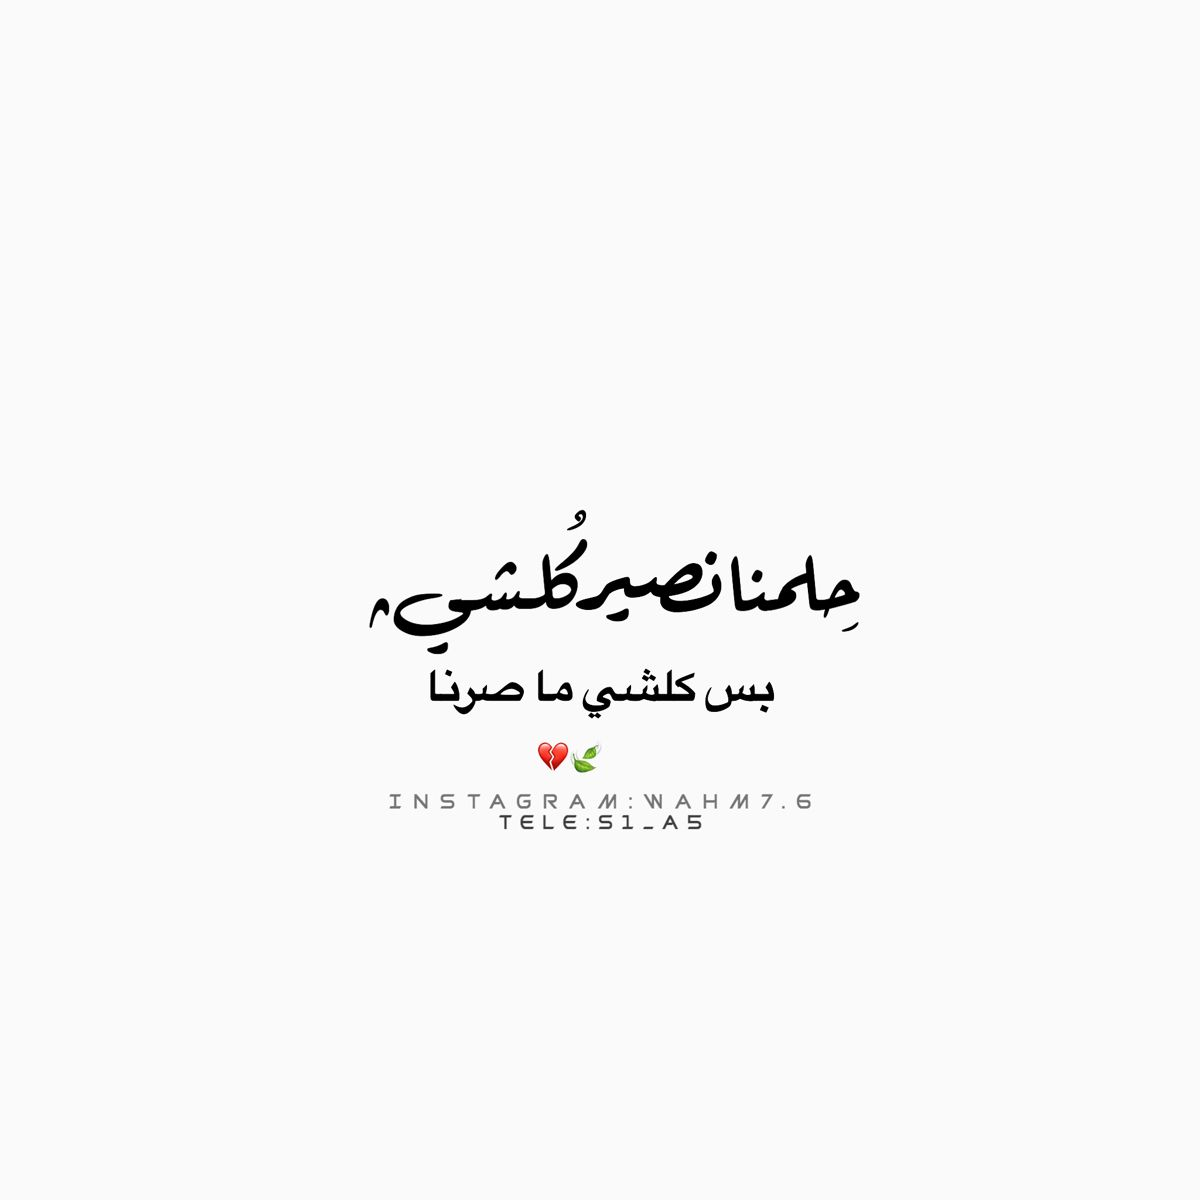 Pin By ألش يخه On Baghdad Islamic Love Quotes Picture Quotes Photo Ideas Girl